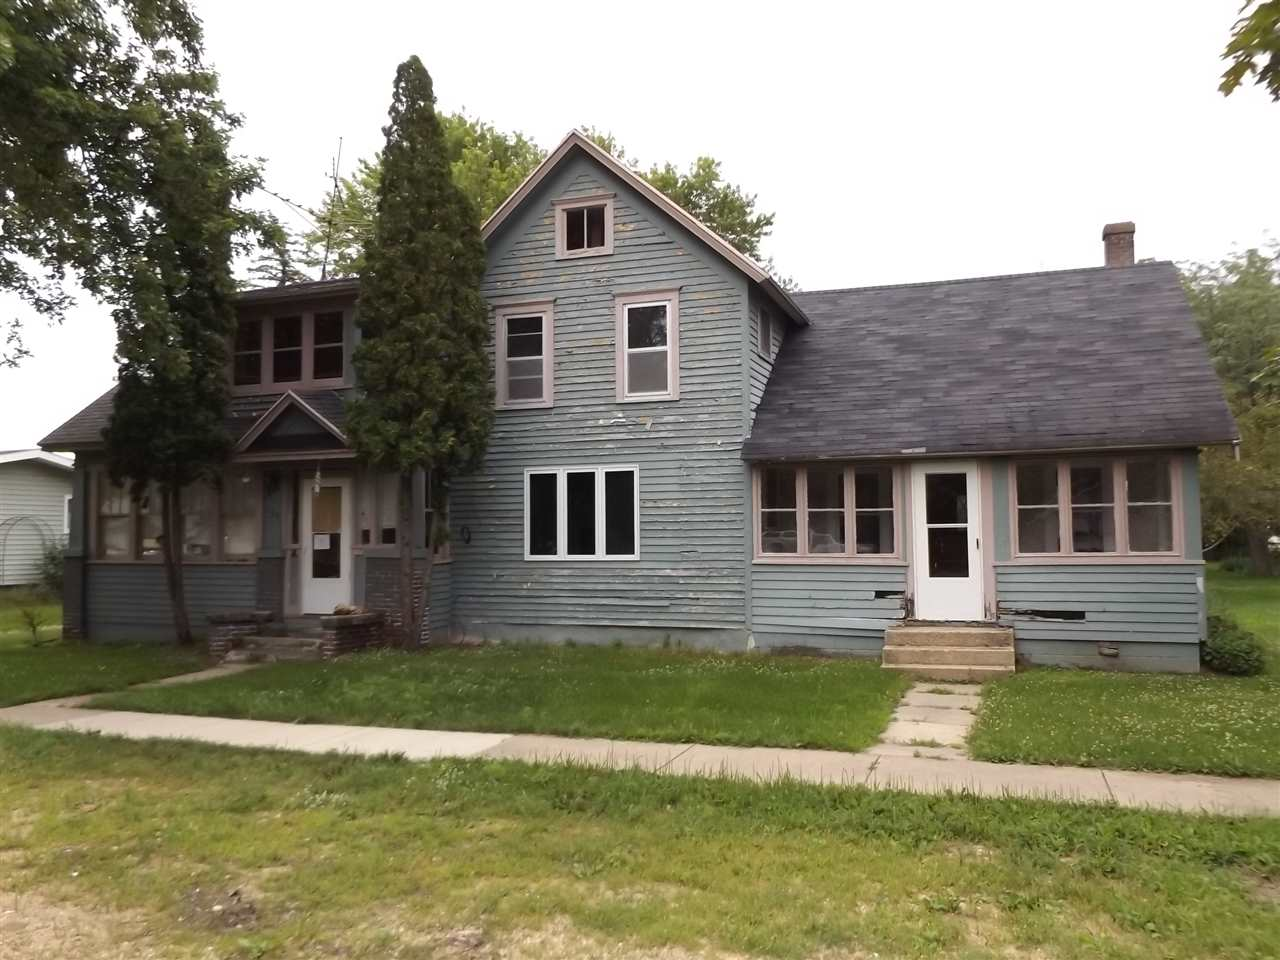 107 S 4th St, Avoca, WI 53506